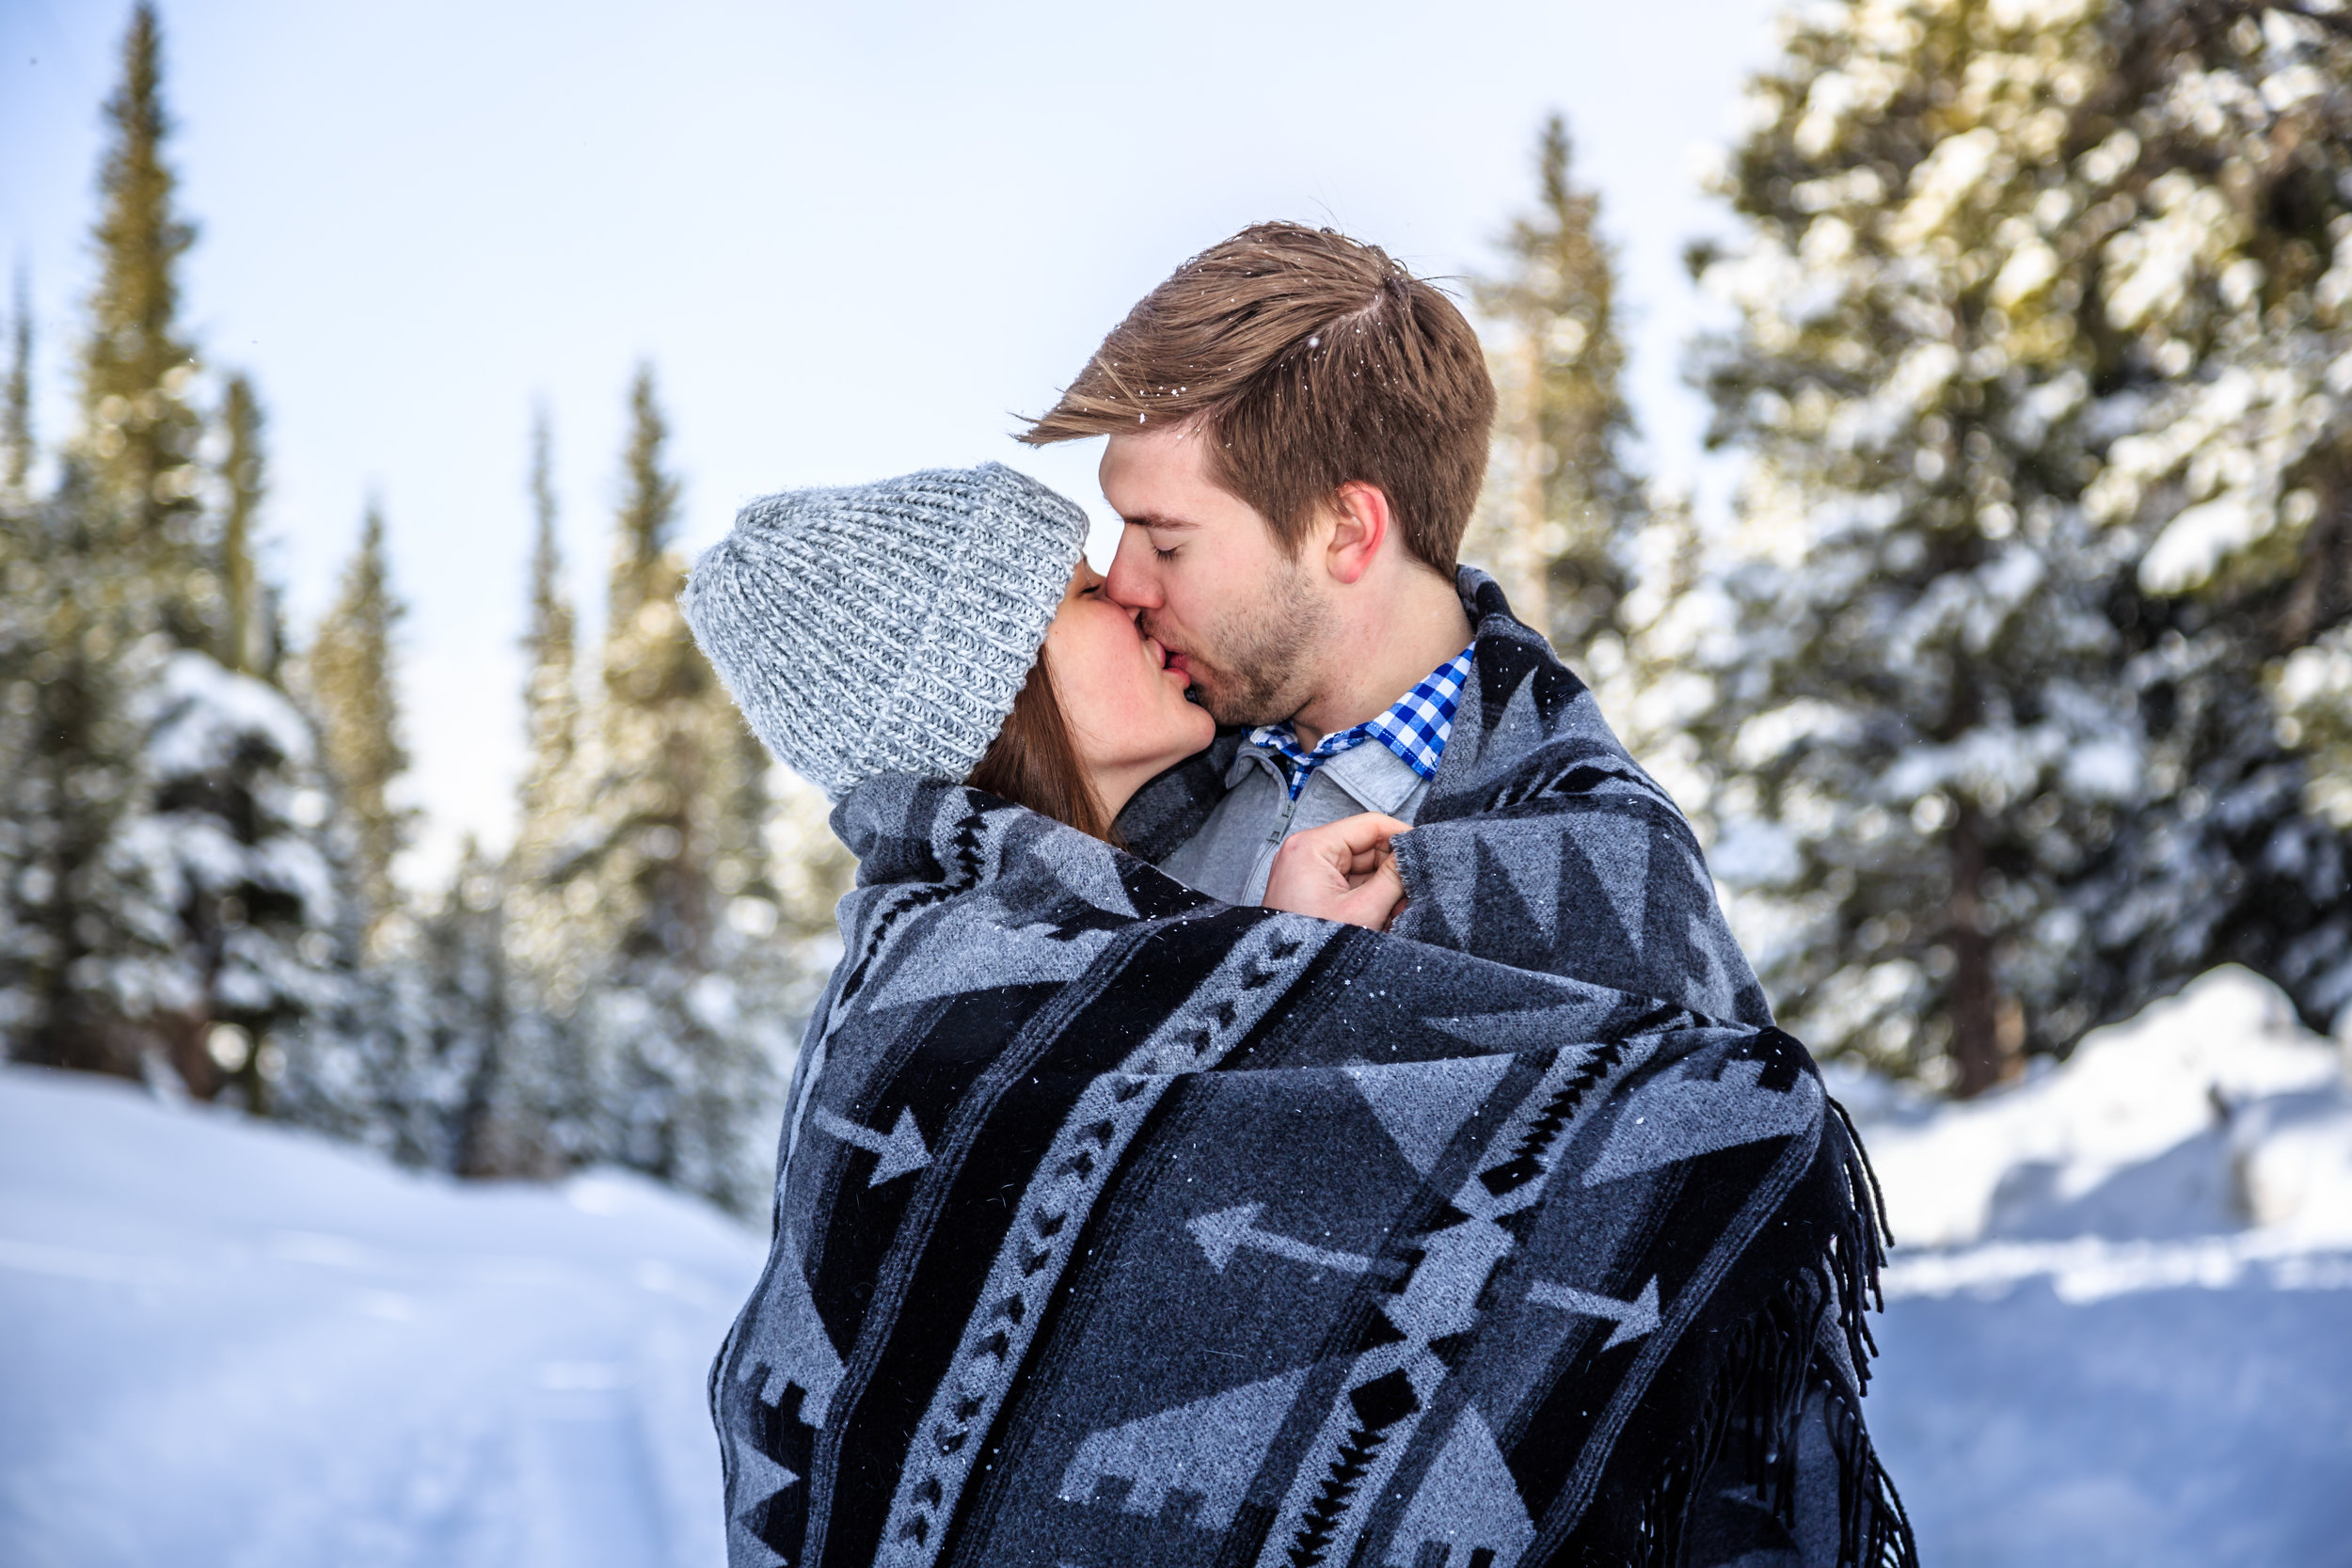 Courtney & Ethan - St. Mary's Alice, CO